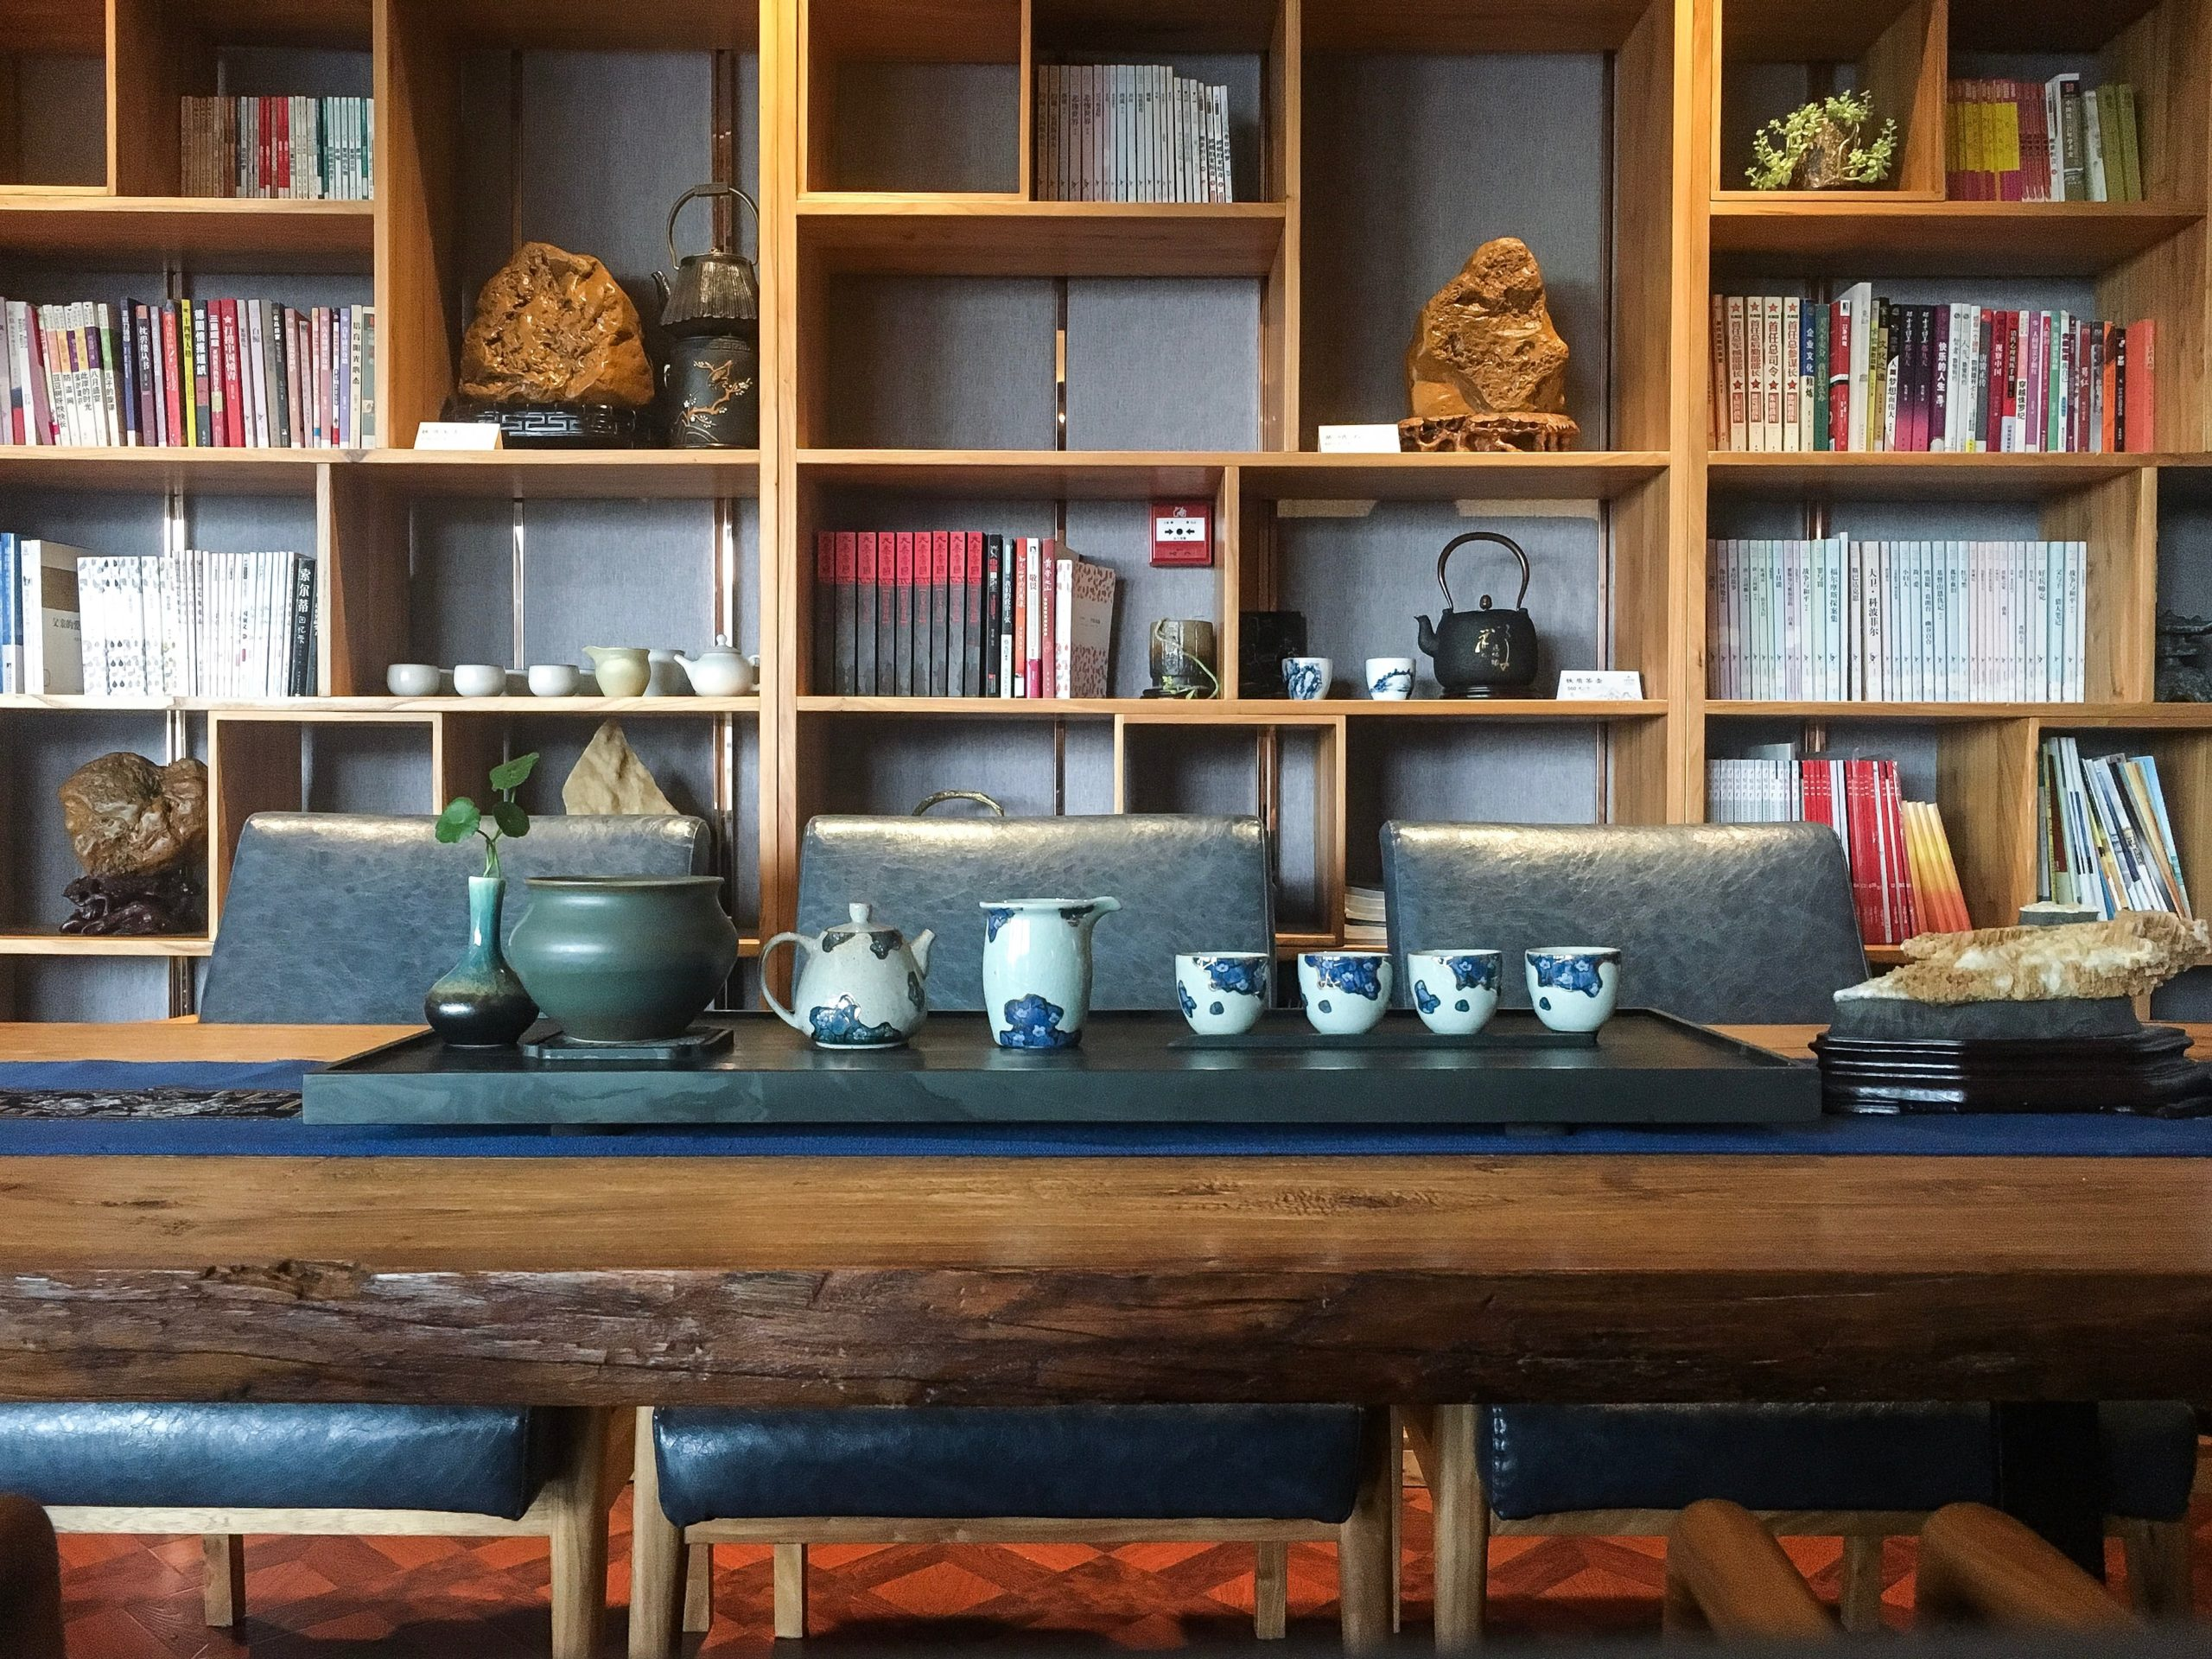 Chinaware placed on a wooden table